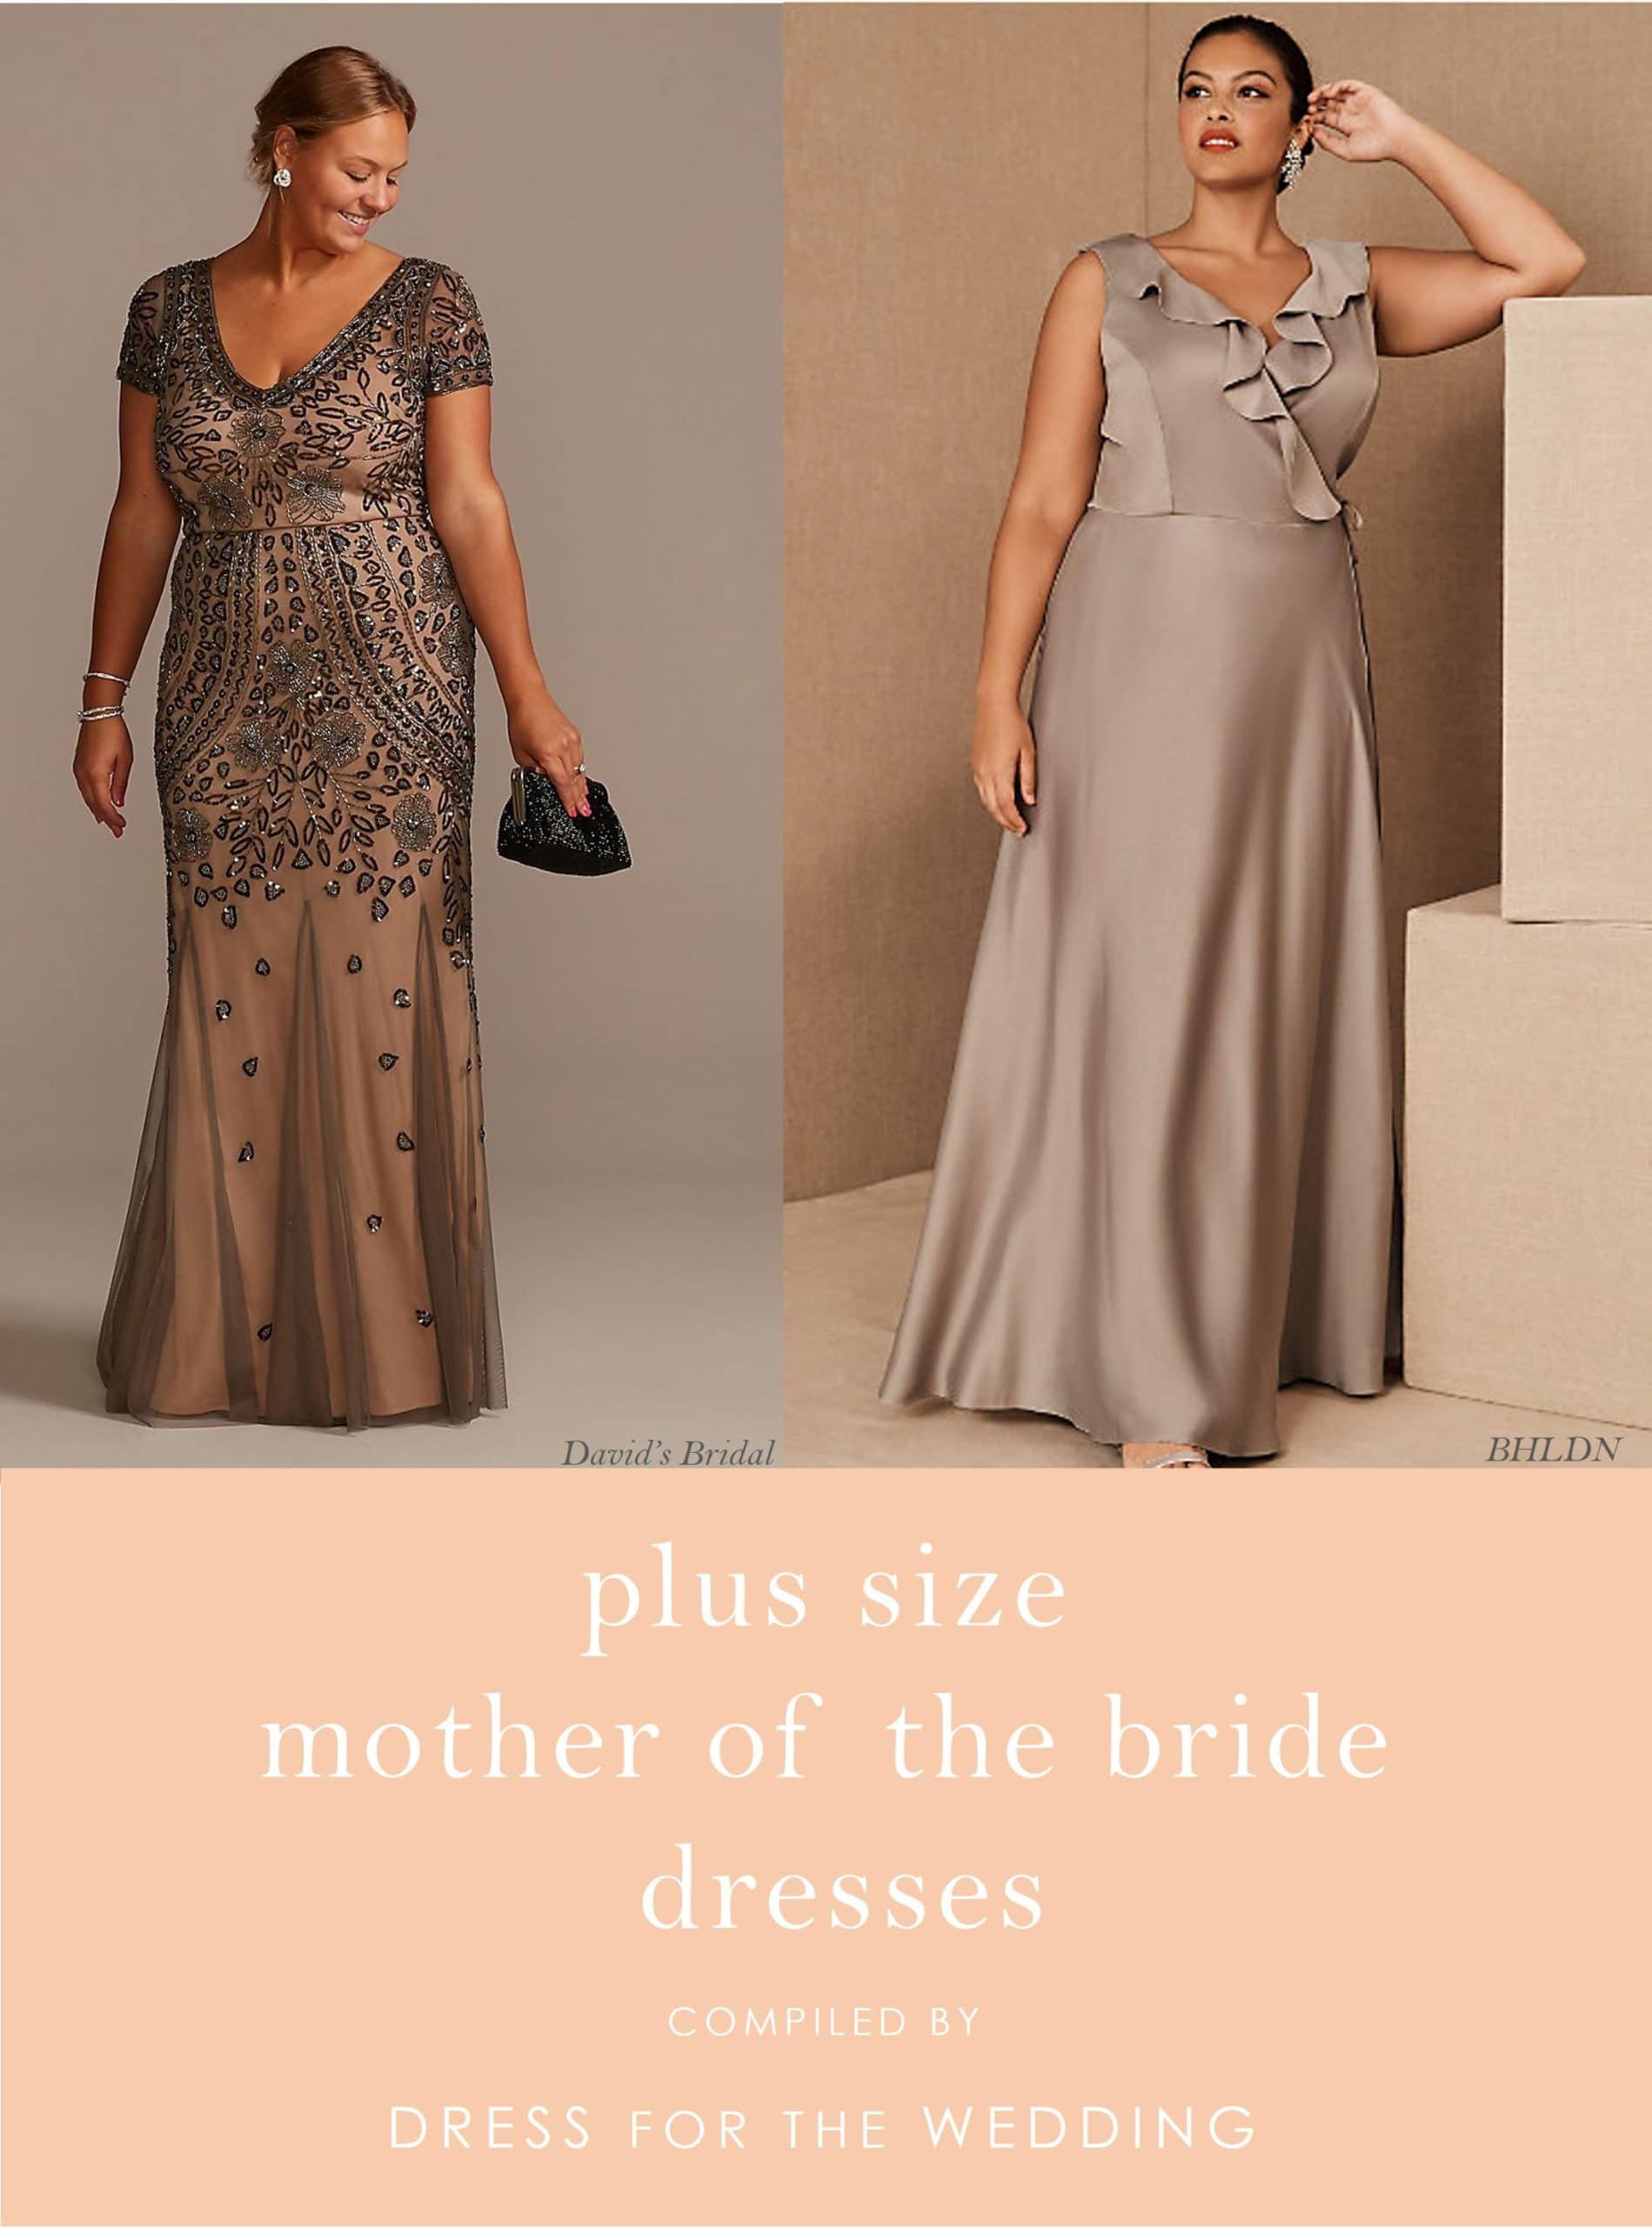 Plus Size Mother of the Bride Dresses   Dress for the Wedding